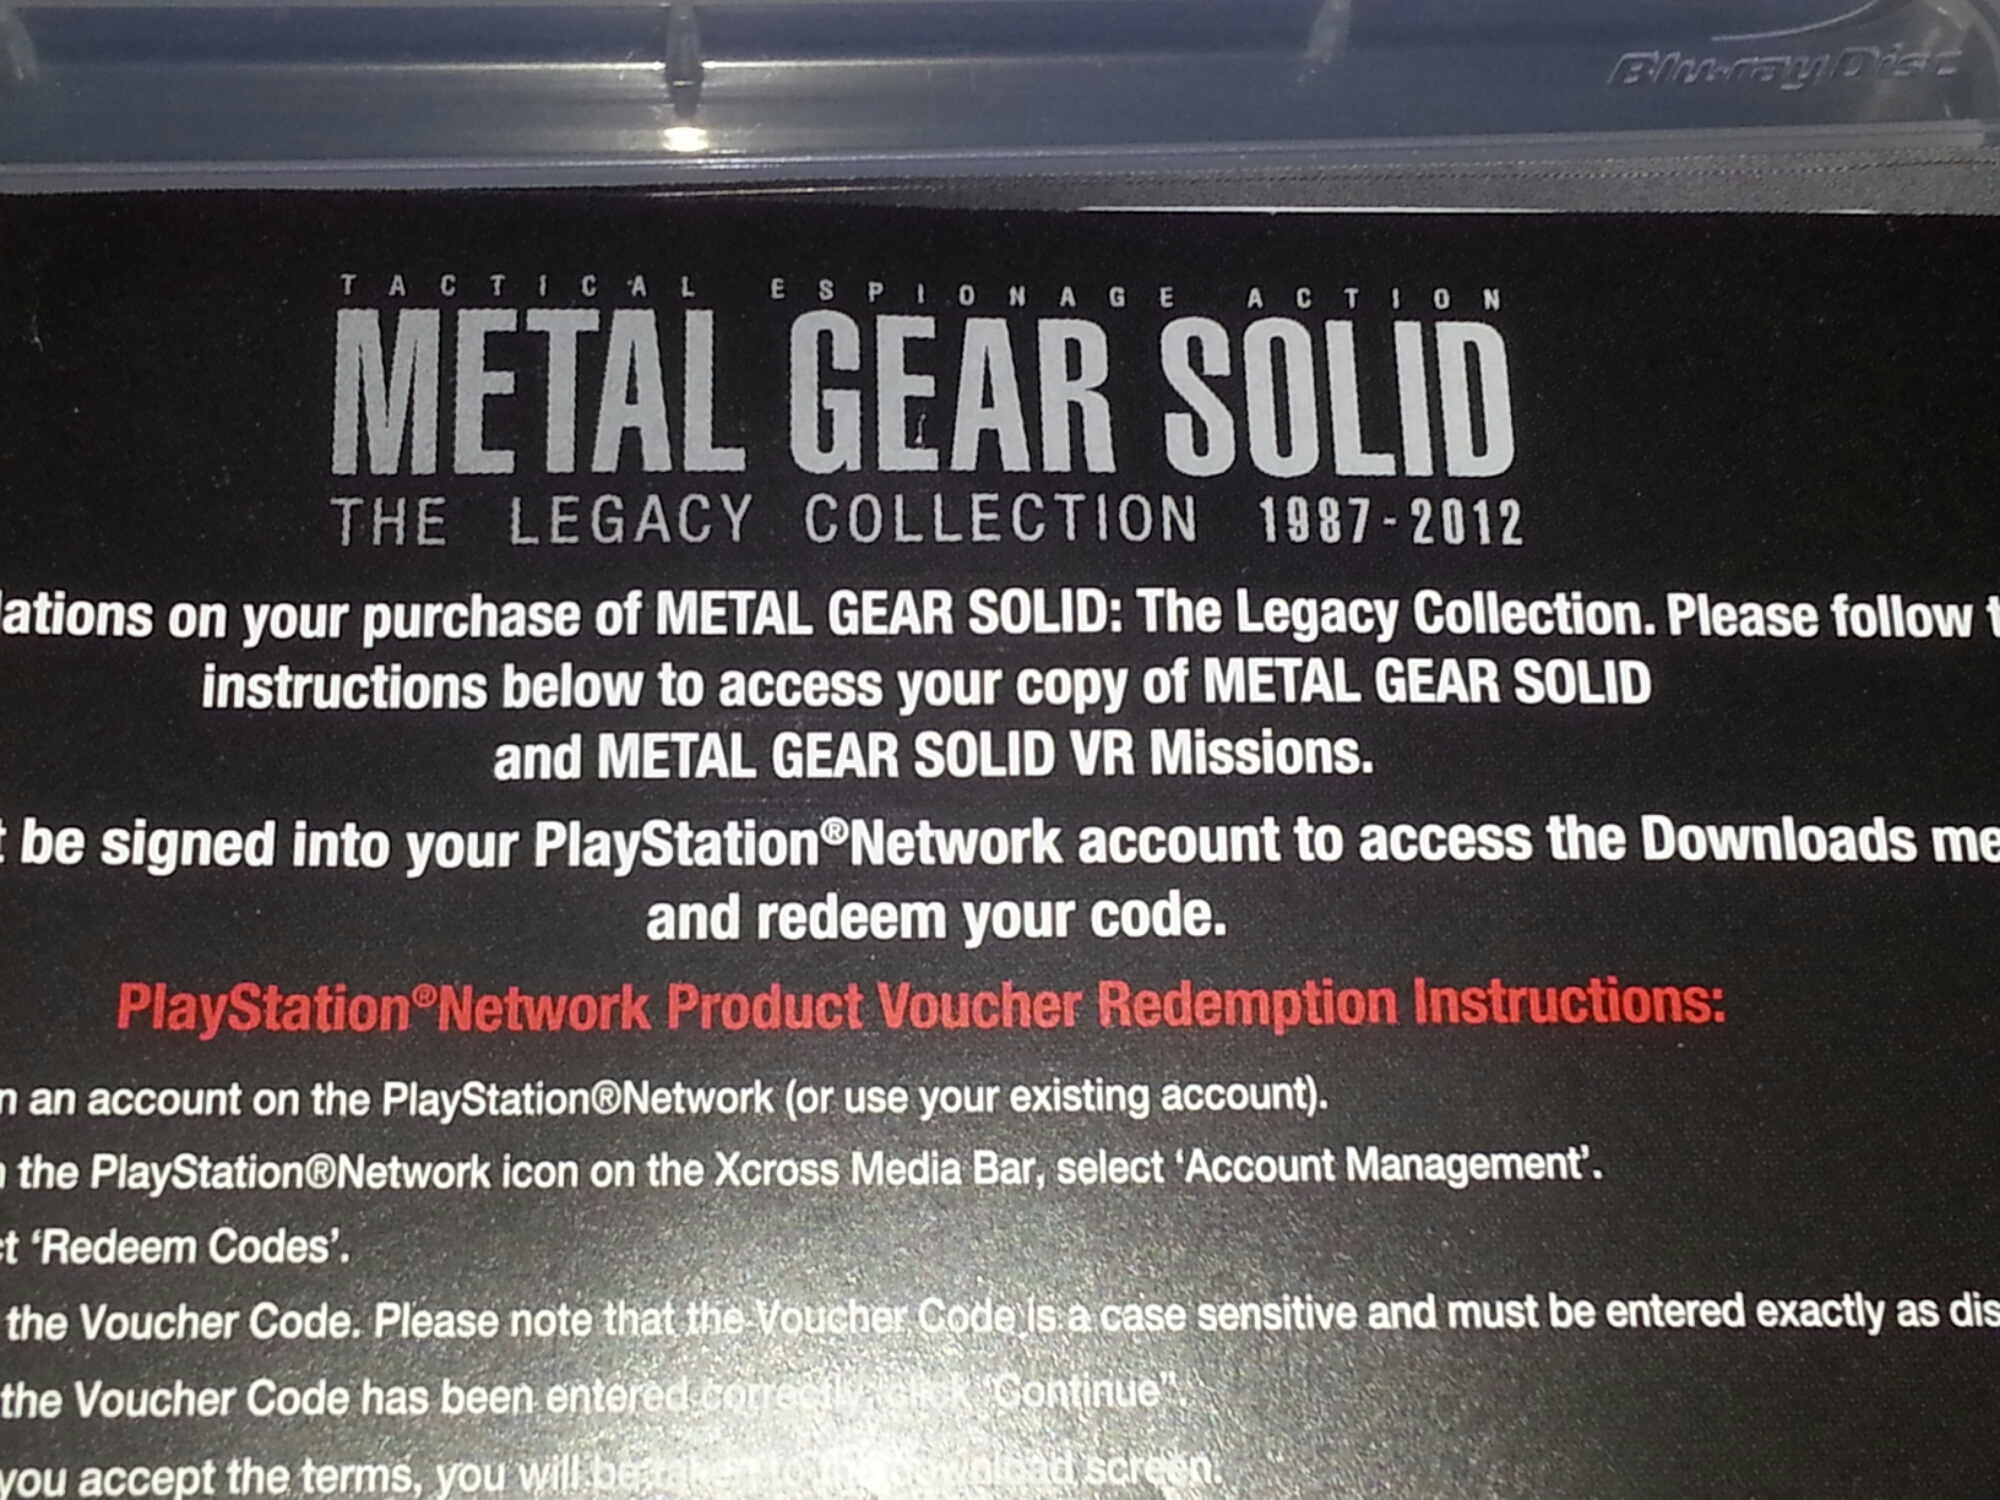 Gameplay color access code - There S A Goddamn Access Code This Is Supposed To Be A Retro Collection Right Why The Fuck Do I Need To Unlock 2 Old Ass Ps1 Games In A Collection Where